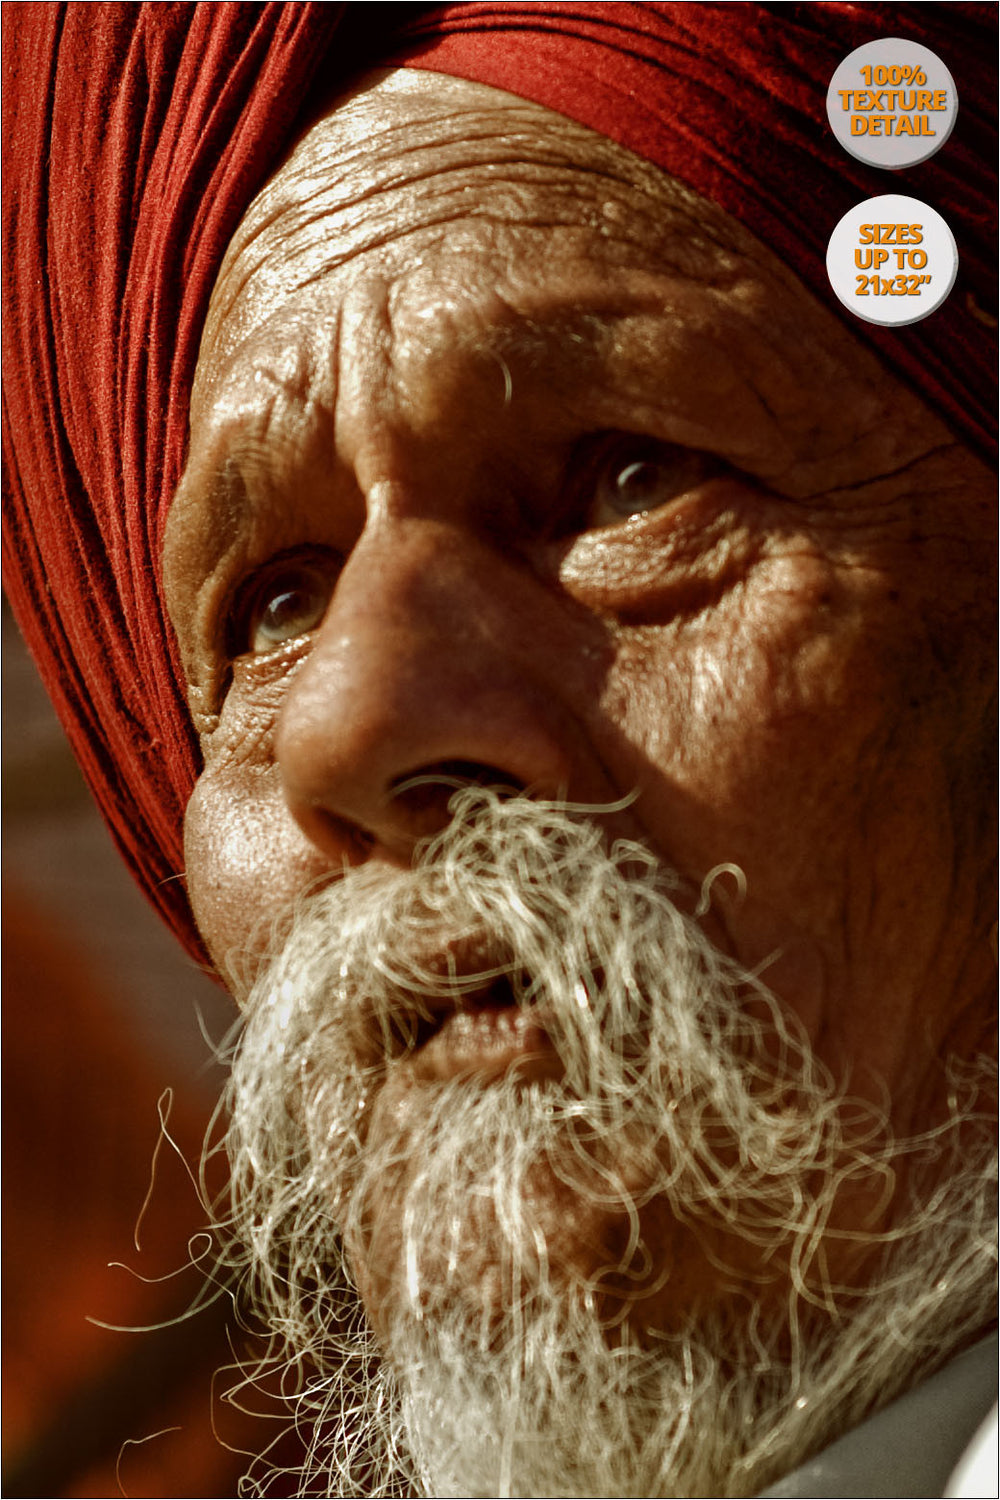 Portrait of a Sikh, Chandigarh, India. | 100% Magnification Texture Detail.